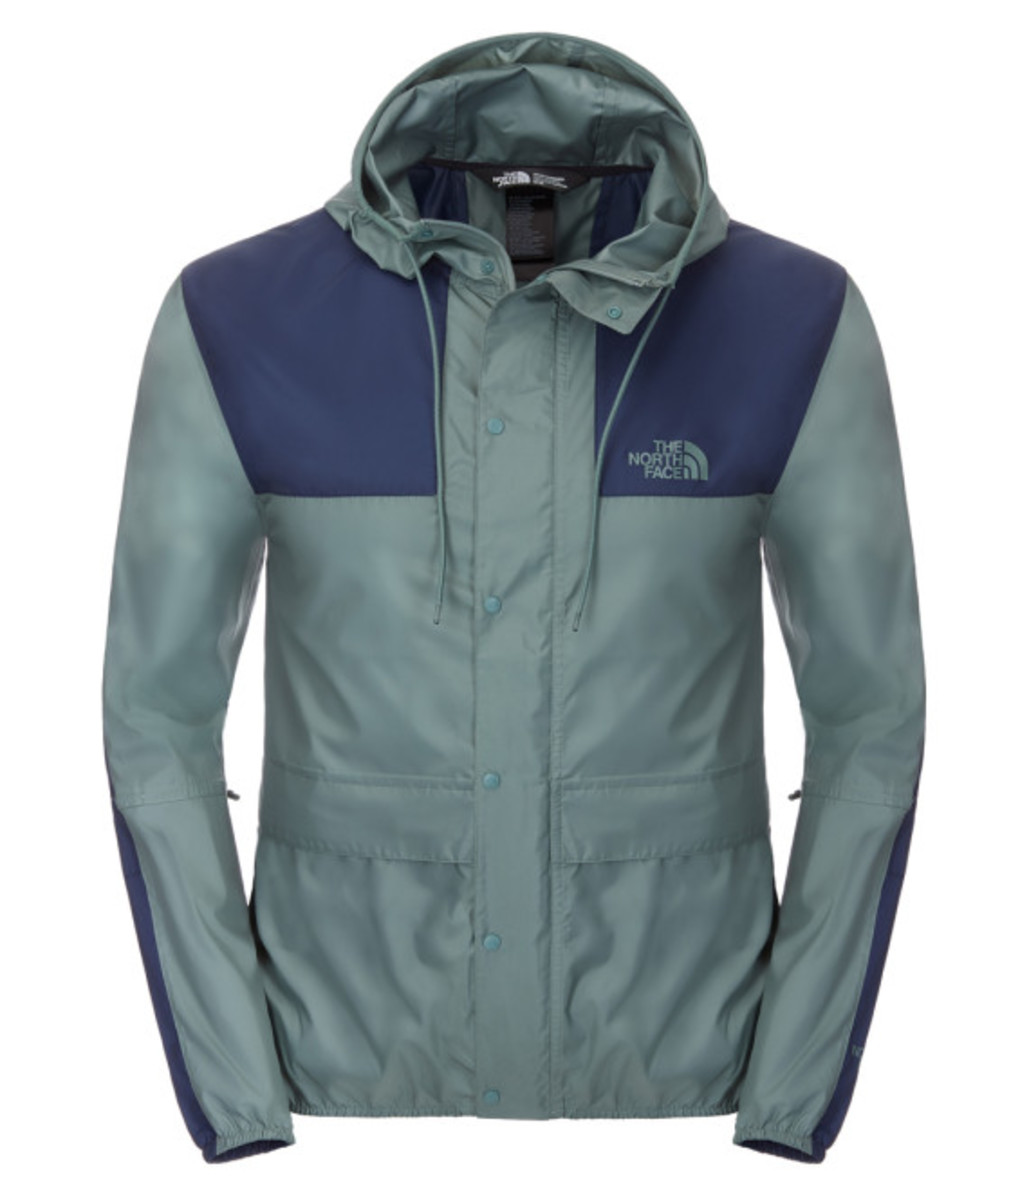 the-north-face-mountain-jacket-16